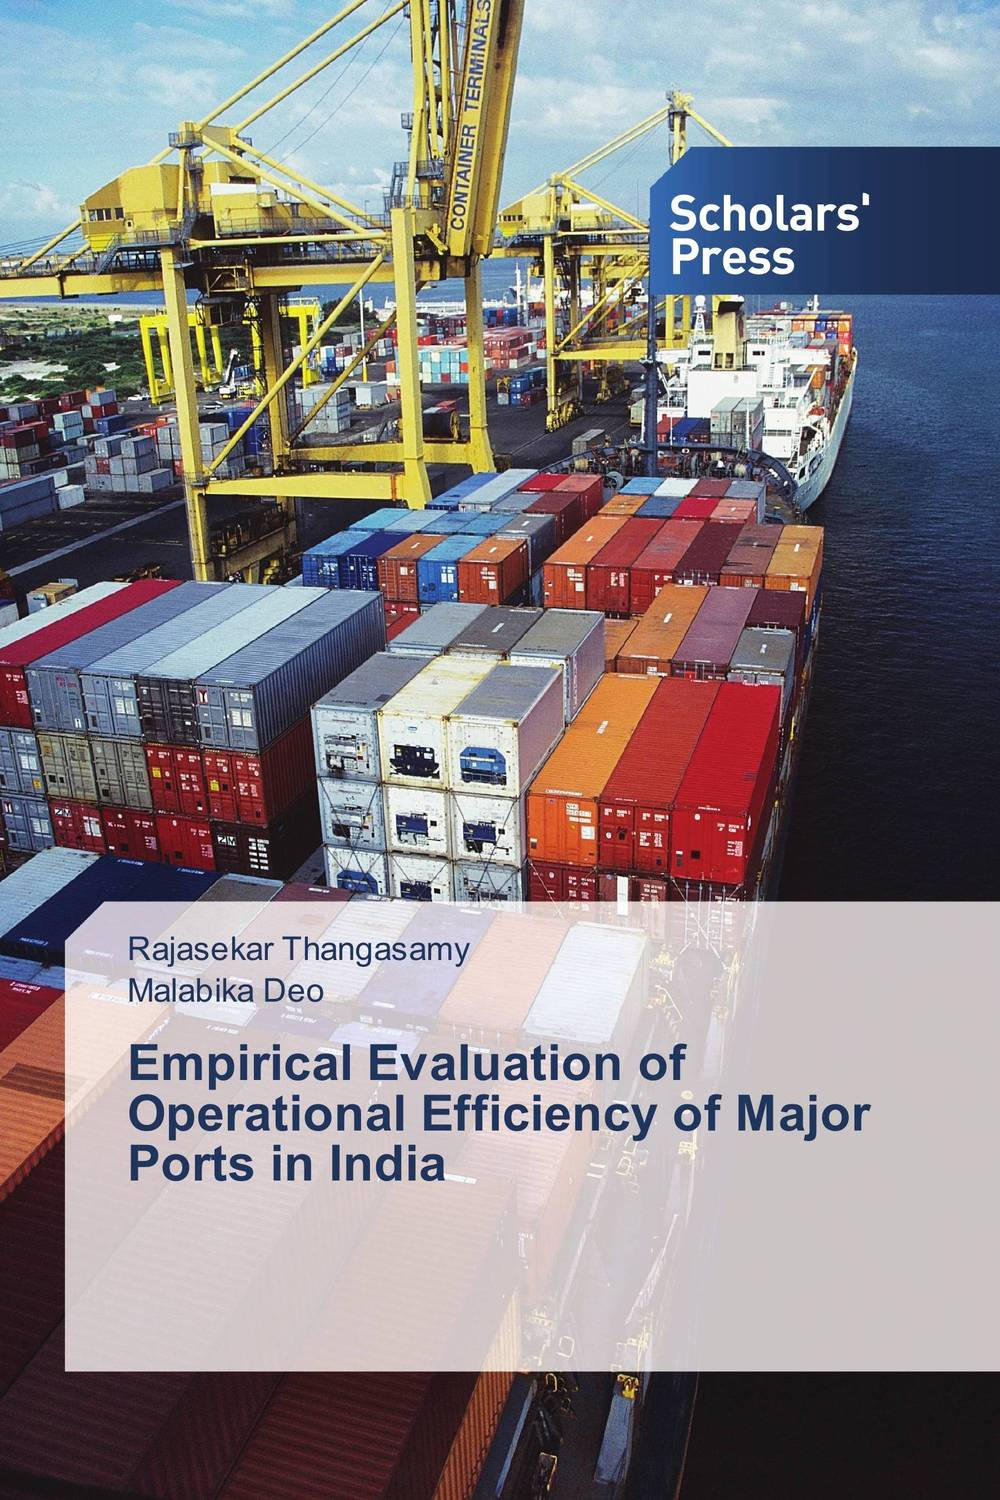 Empirical Evaluation of Operational Efficiency of Major Ports in India empirical evaluation of operational efficiency of major ports in india